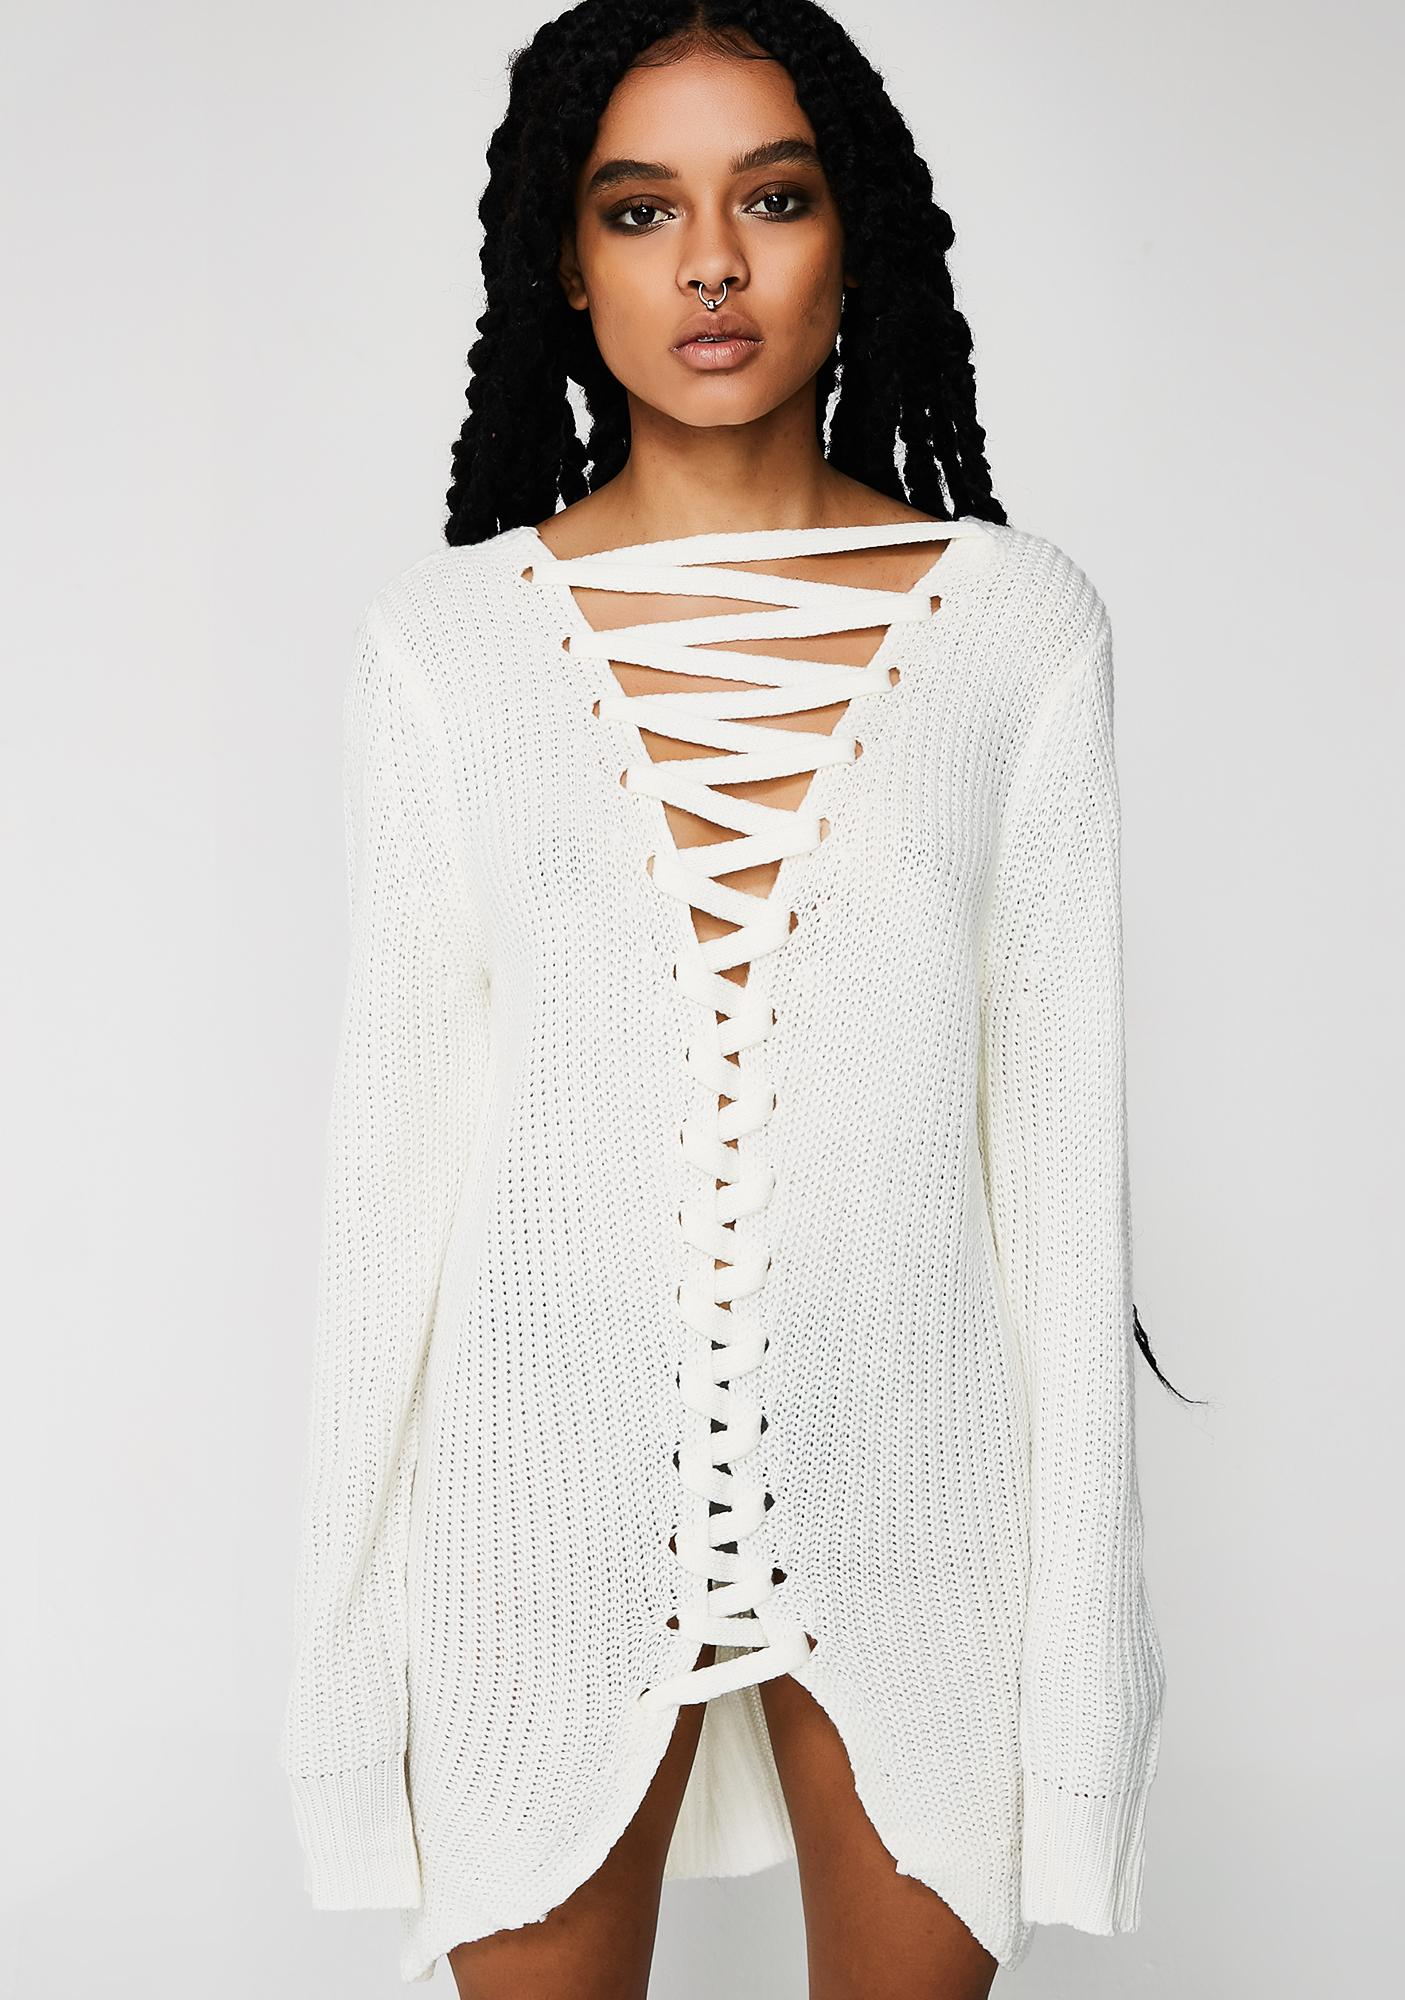 Play Date Lace-Up Sweater